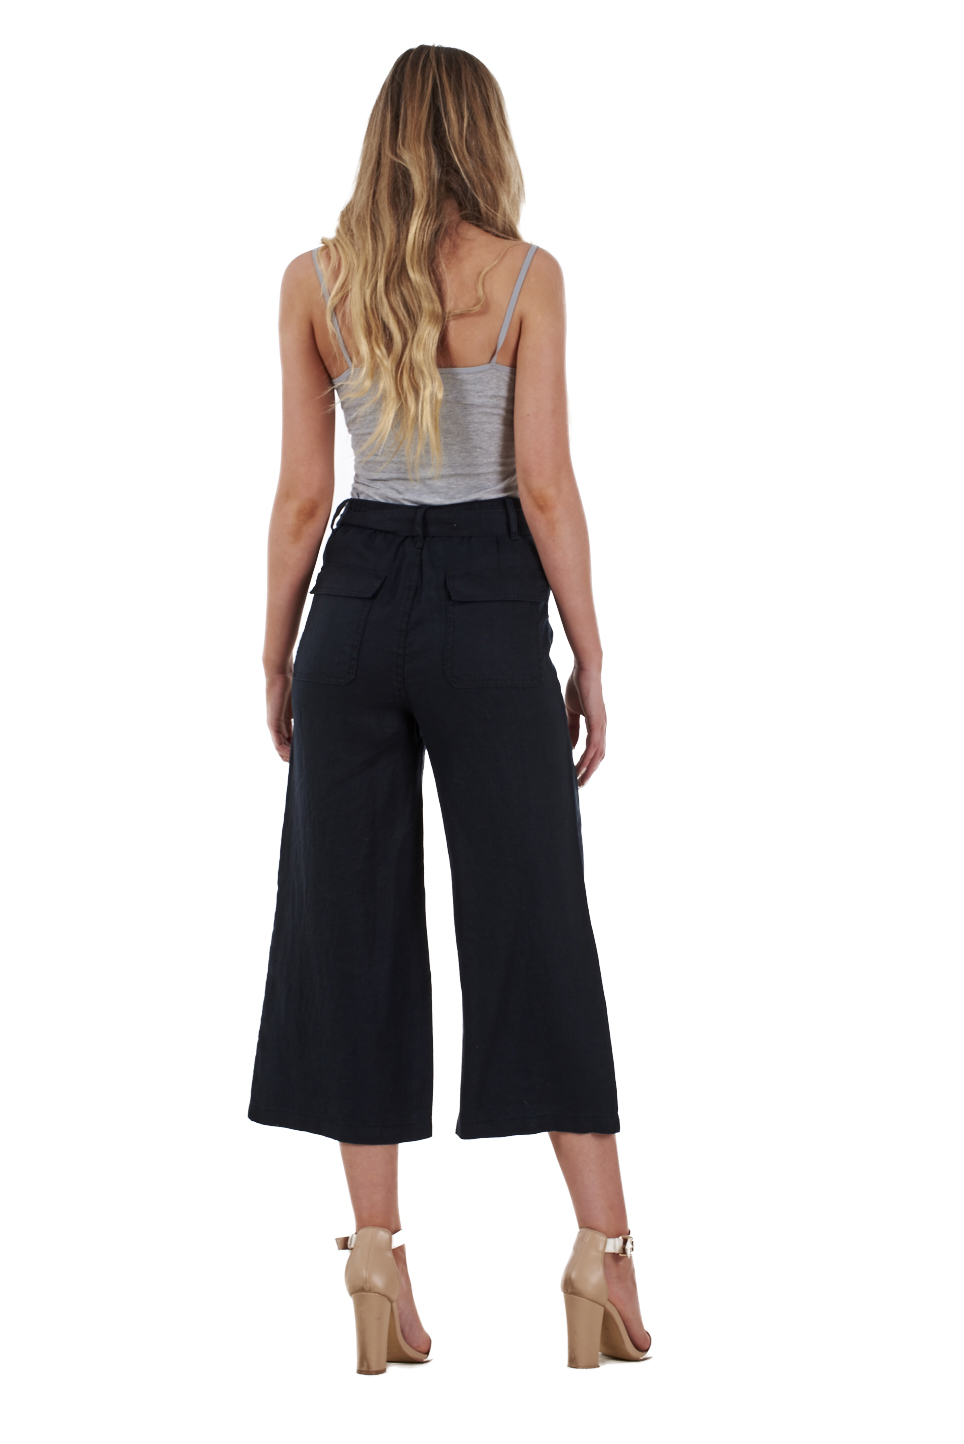 Amazing value, these comfortable cotton rich cropped trousers are an essential piece for your summer wardrobe. Featuring self fabric waistband, stitching detailing and functional front pockets with an added non functioning button for that extra touch, these crop trousers will add that extra comfort to your outfit.